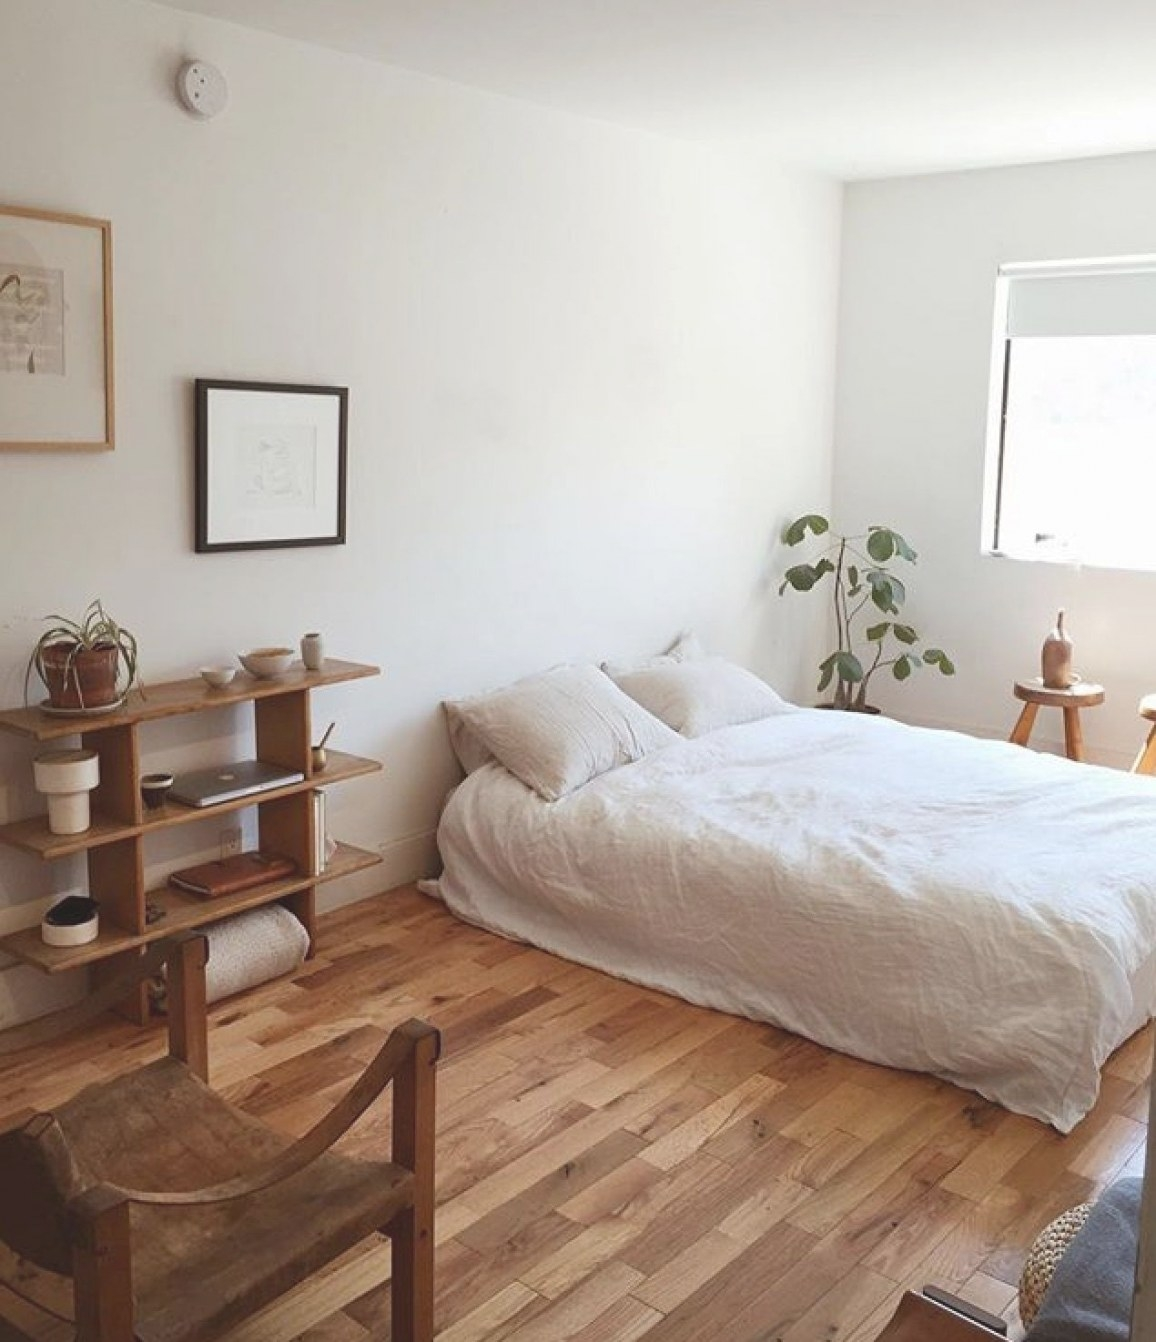 Pretty Simple Room, White And Wood | Minimalist Bedroom regarding White And Wood Bedroom